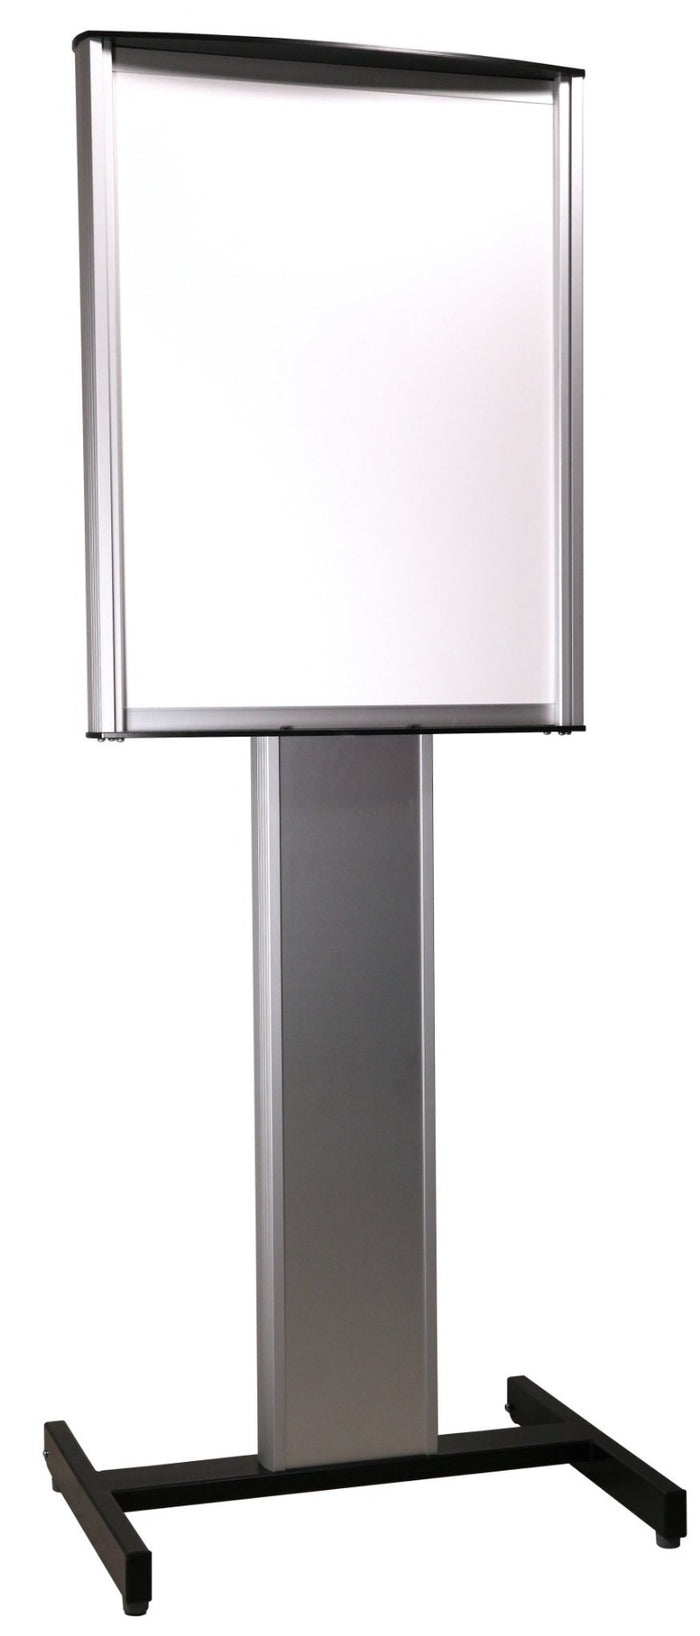 "Crowd Control Versa Heavy-Duty Sign Stand | 22"" X 28"" Frame 